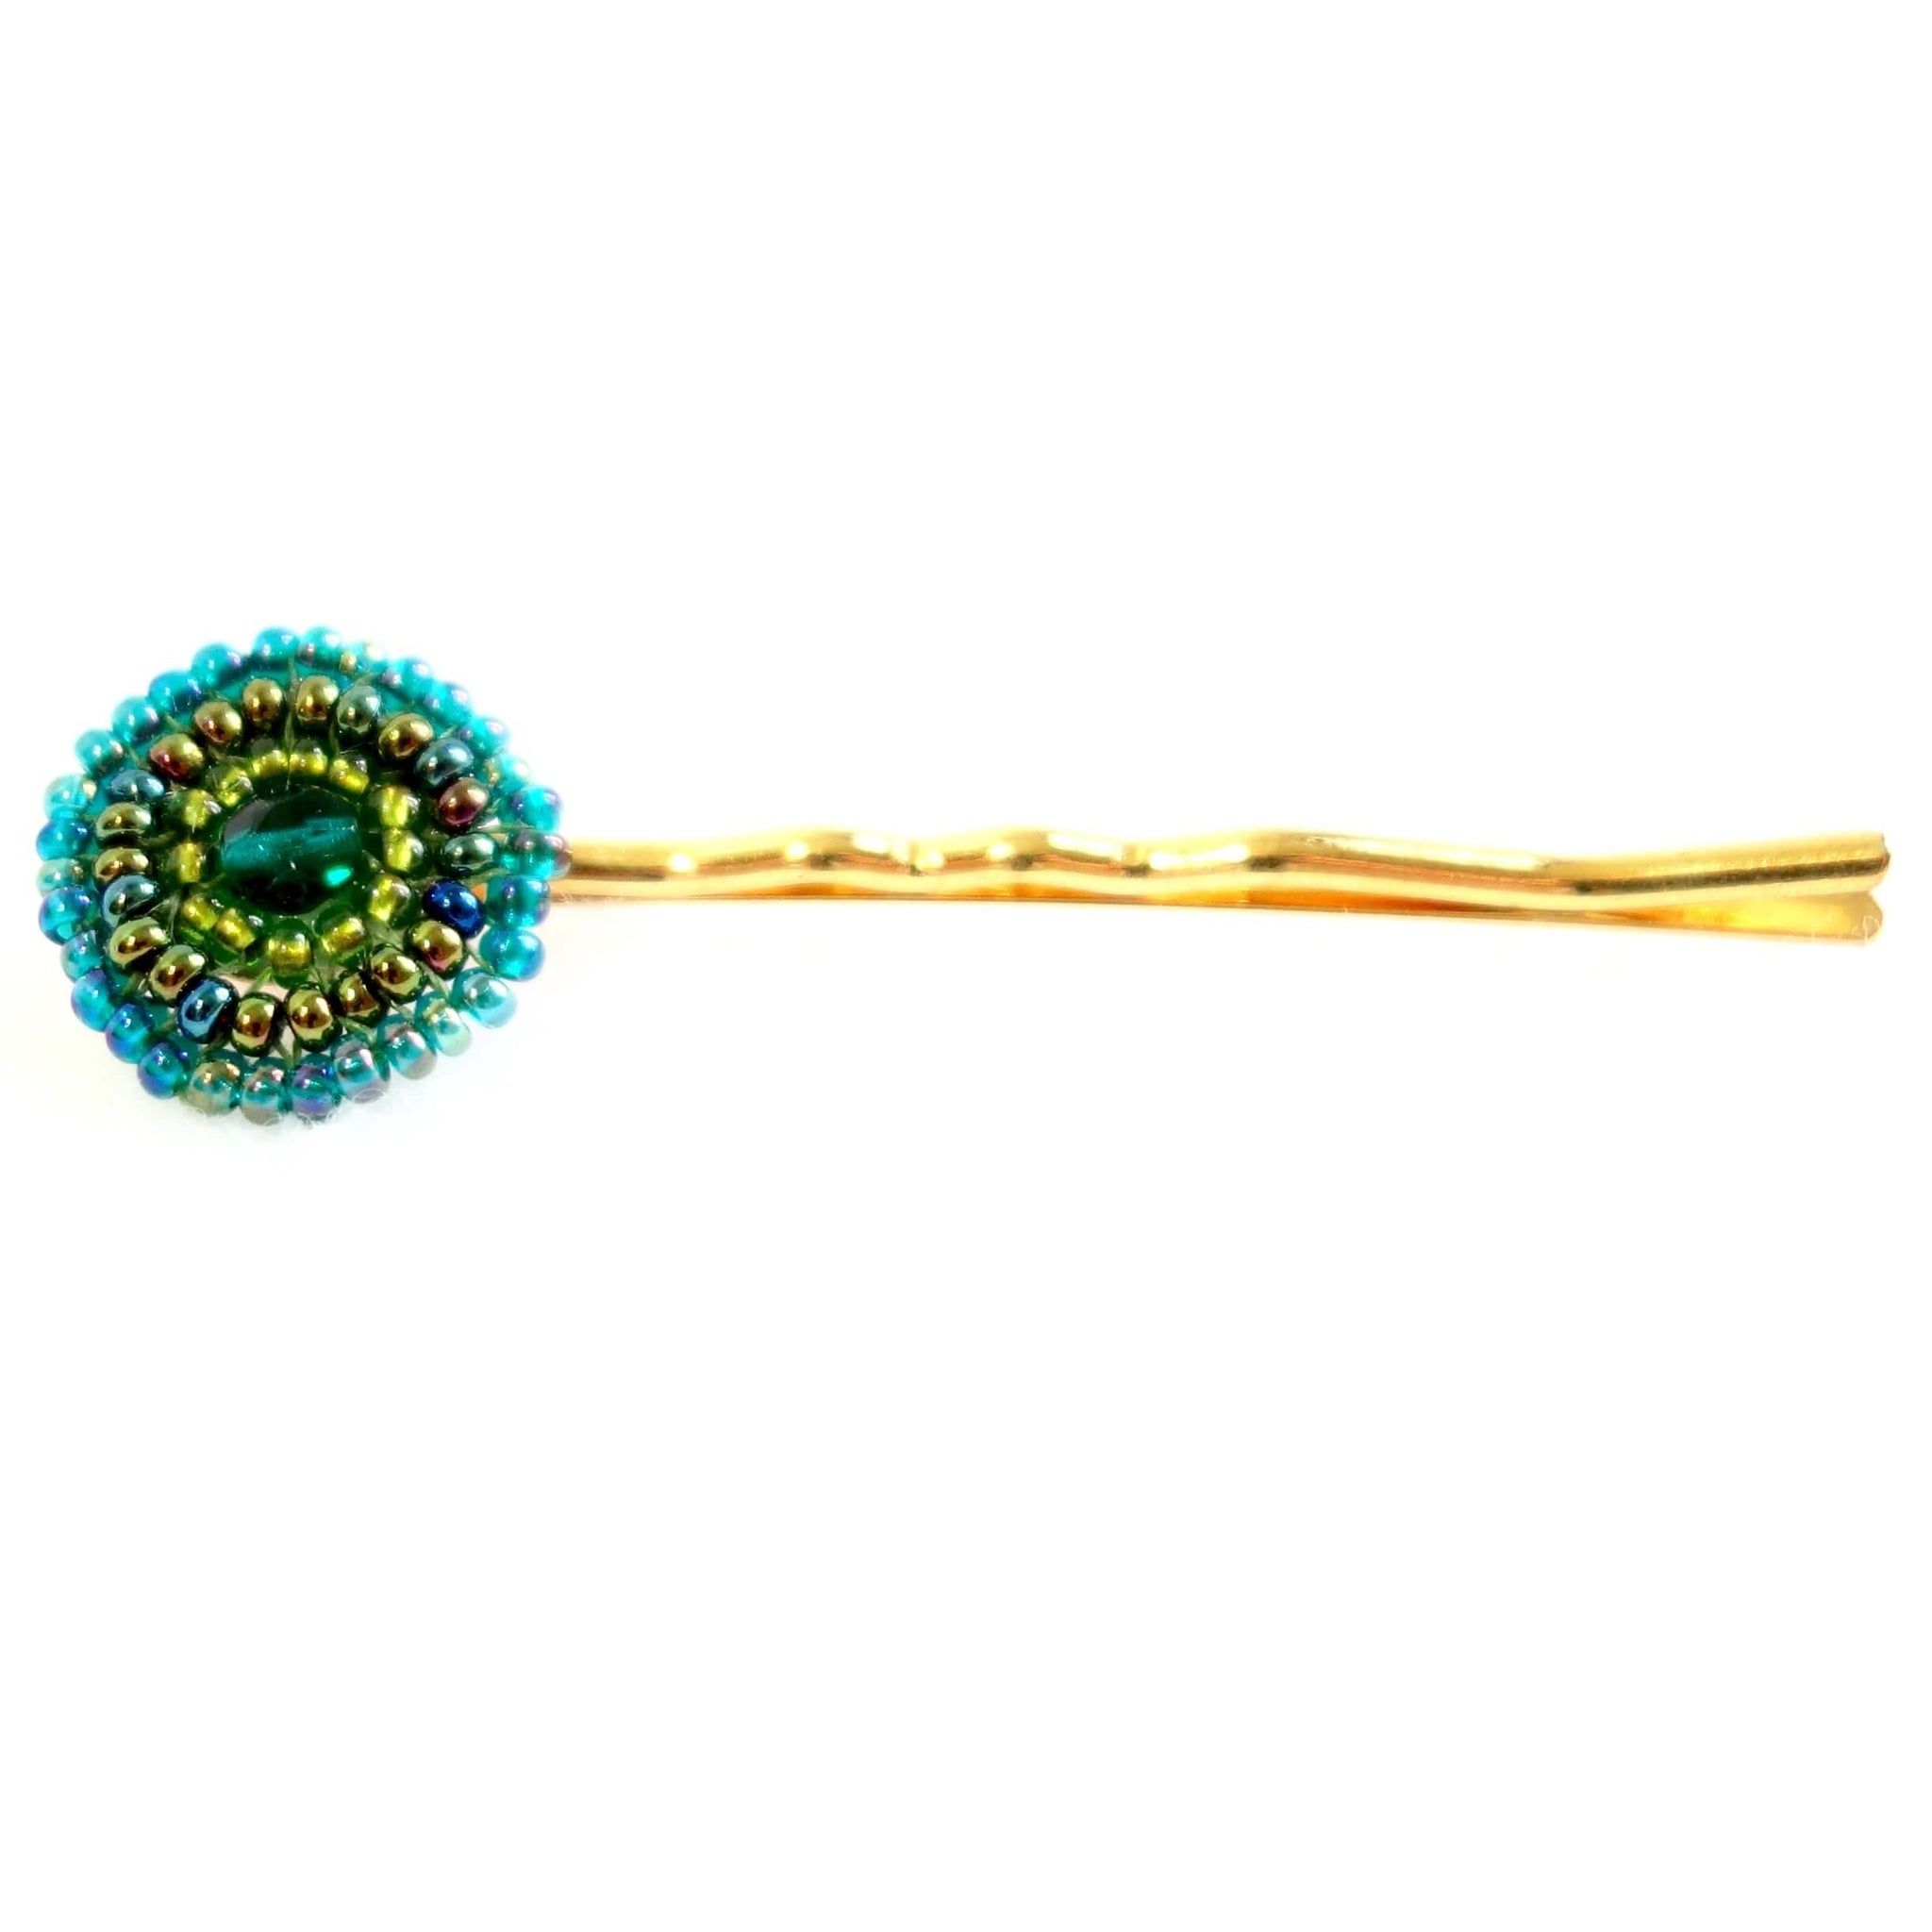 Seed Beaded Hair Pin Certified Fair Trade Made in Guatemala